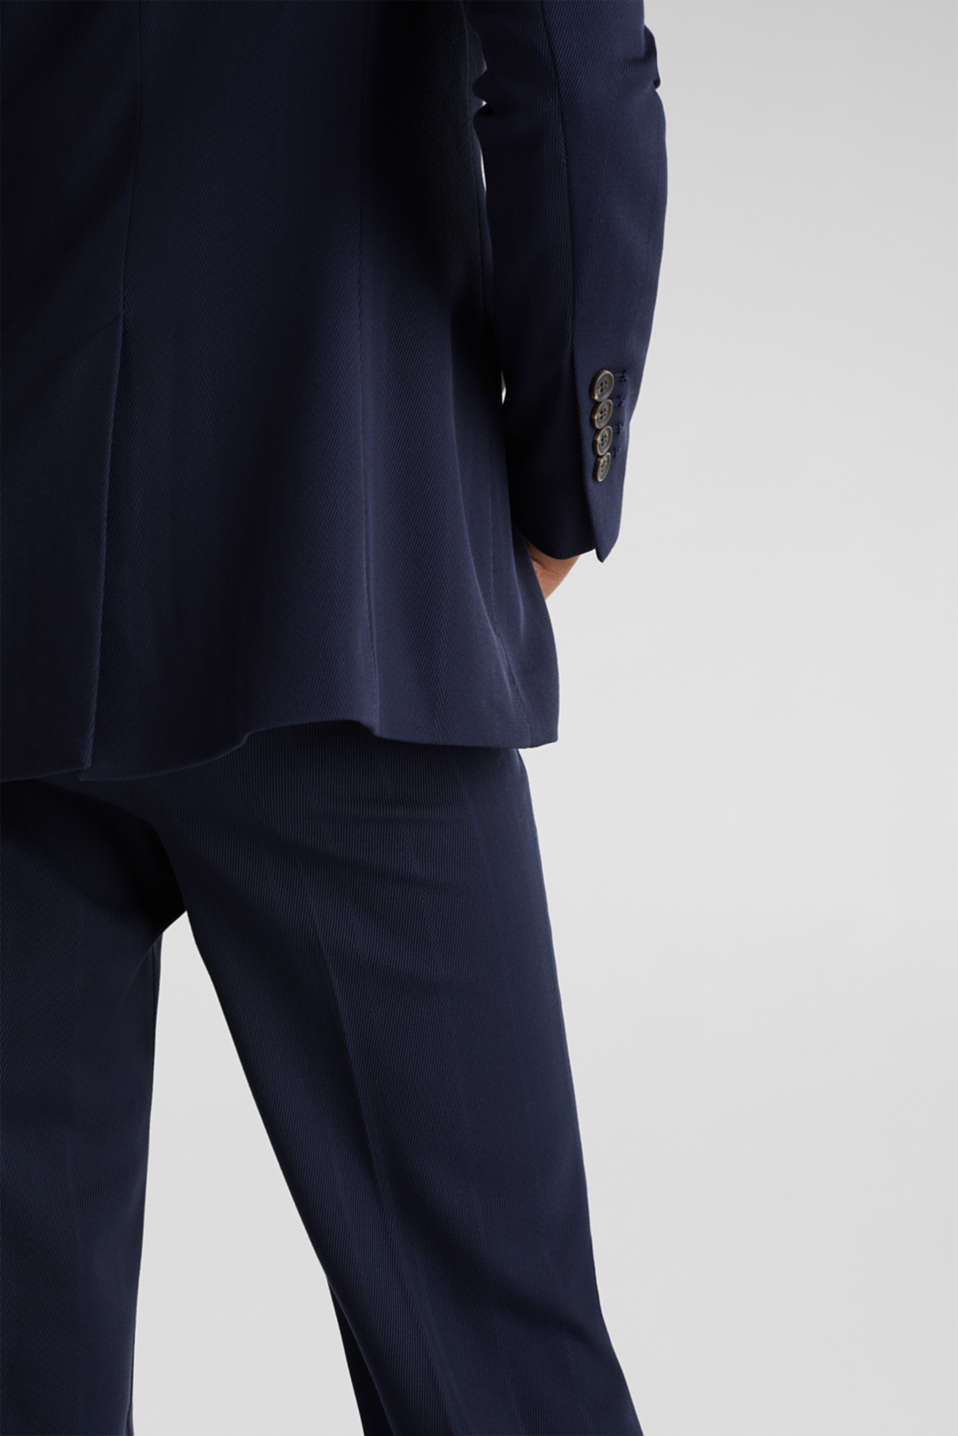 STRUCTURE STRIPES textured blazer, NAVY, detail image number 5